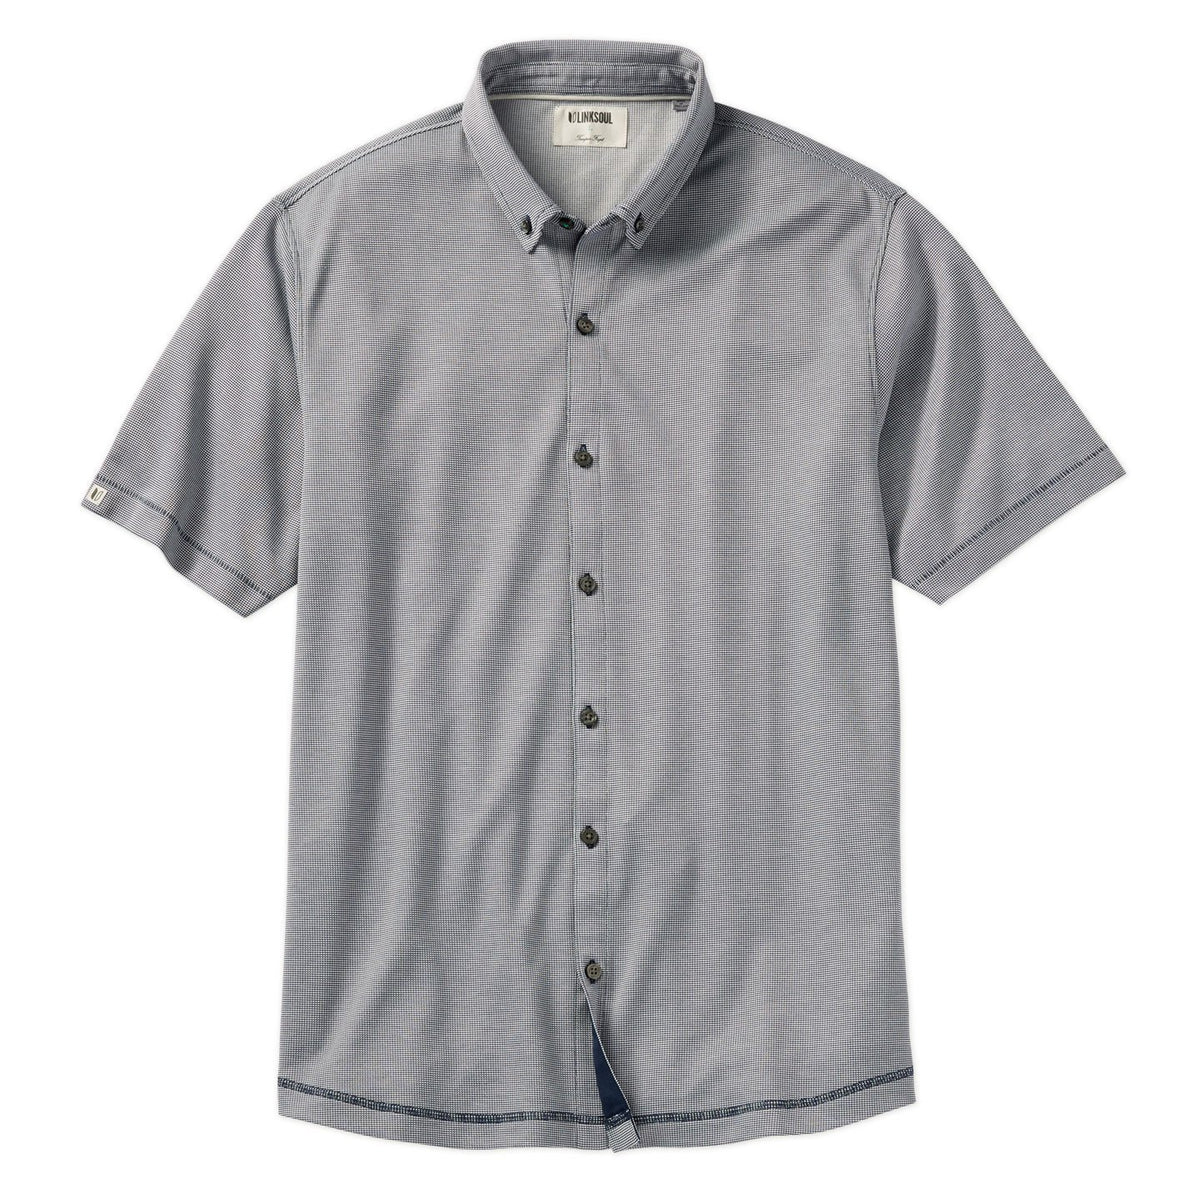 Double Knit Dry-Tech Short Sleeve Button-Down Shirt